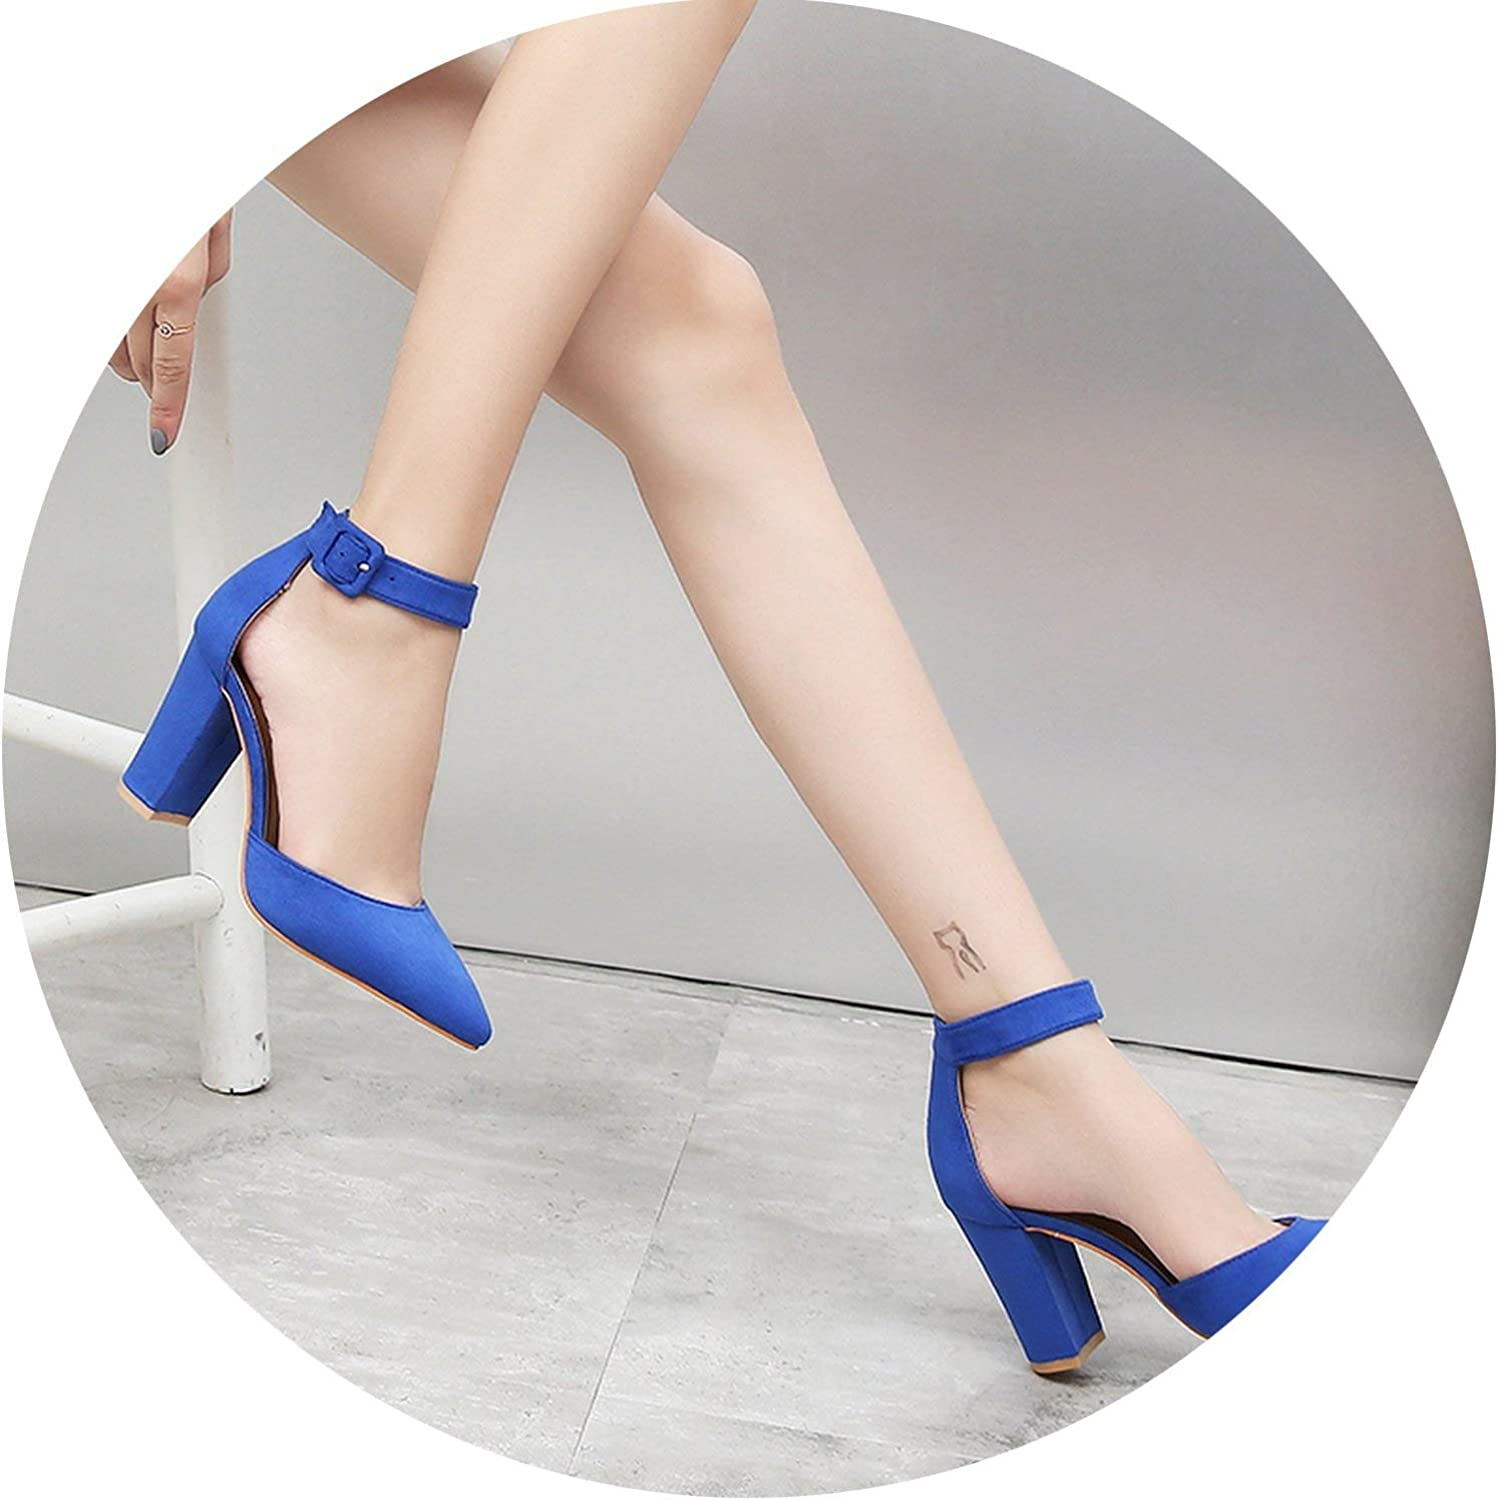 HANBINGPO Pumps Women shoes Sandal Flock Slip-On Shallow Wedding Party Fashion Toe Lady Girl High Heels Pump,bluee,10